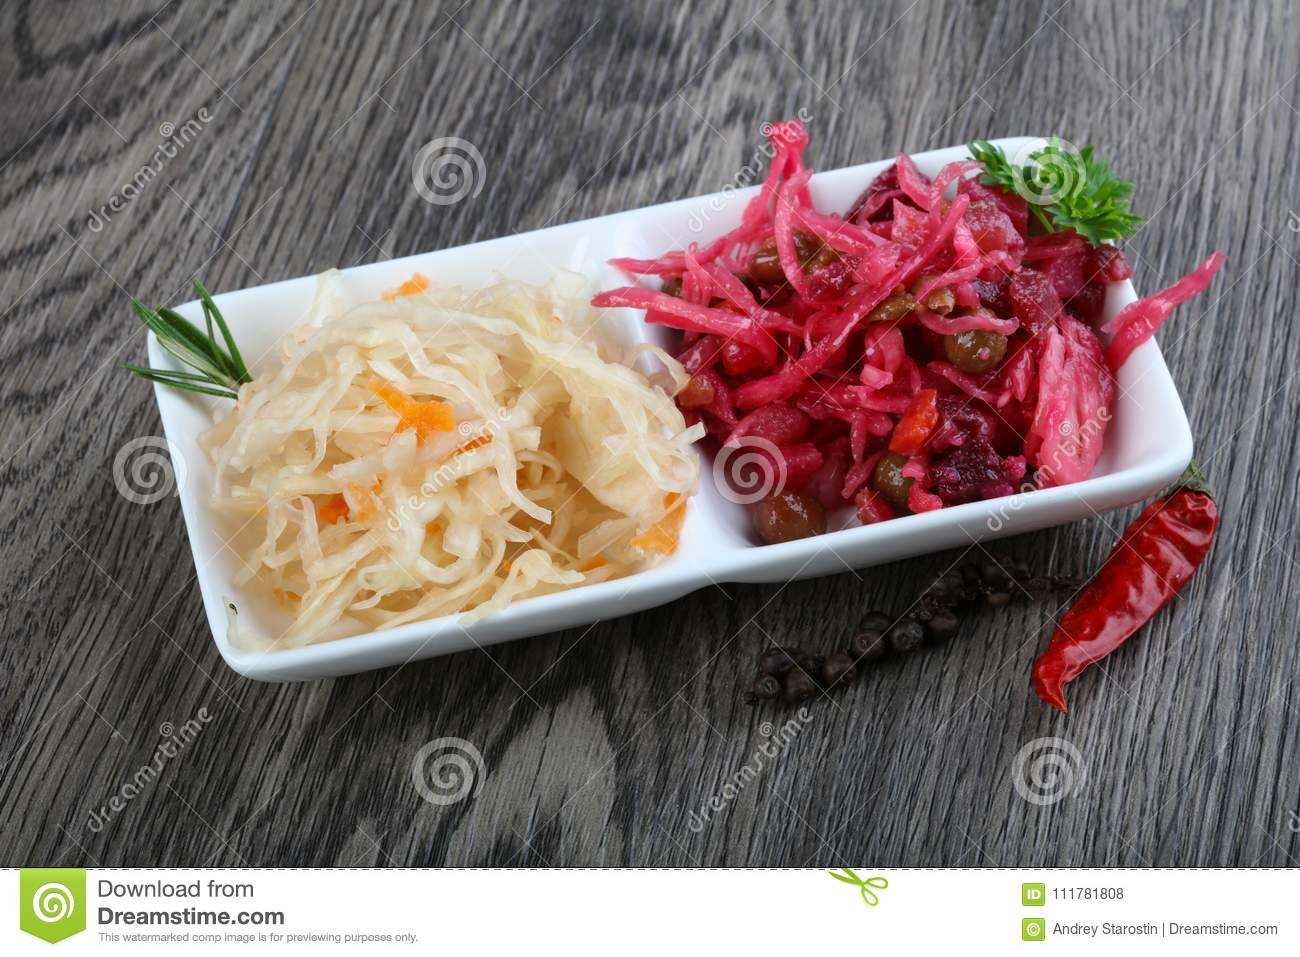 Viniagrette and fermented cabbage